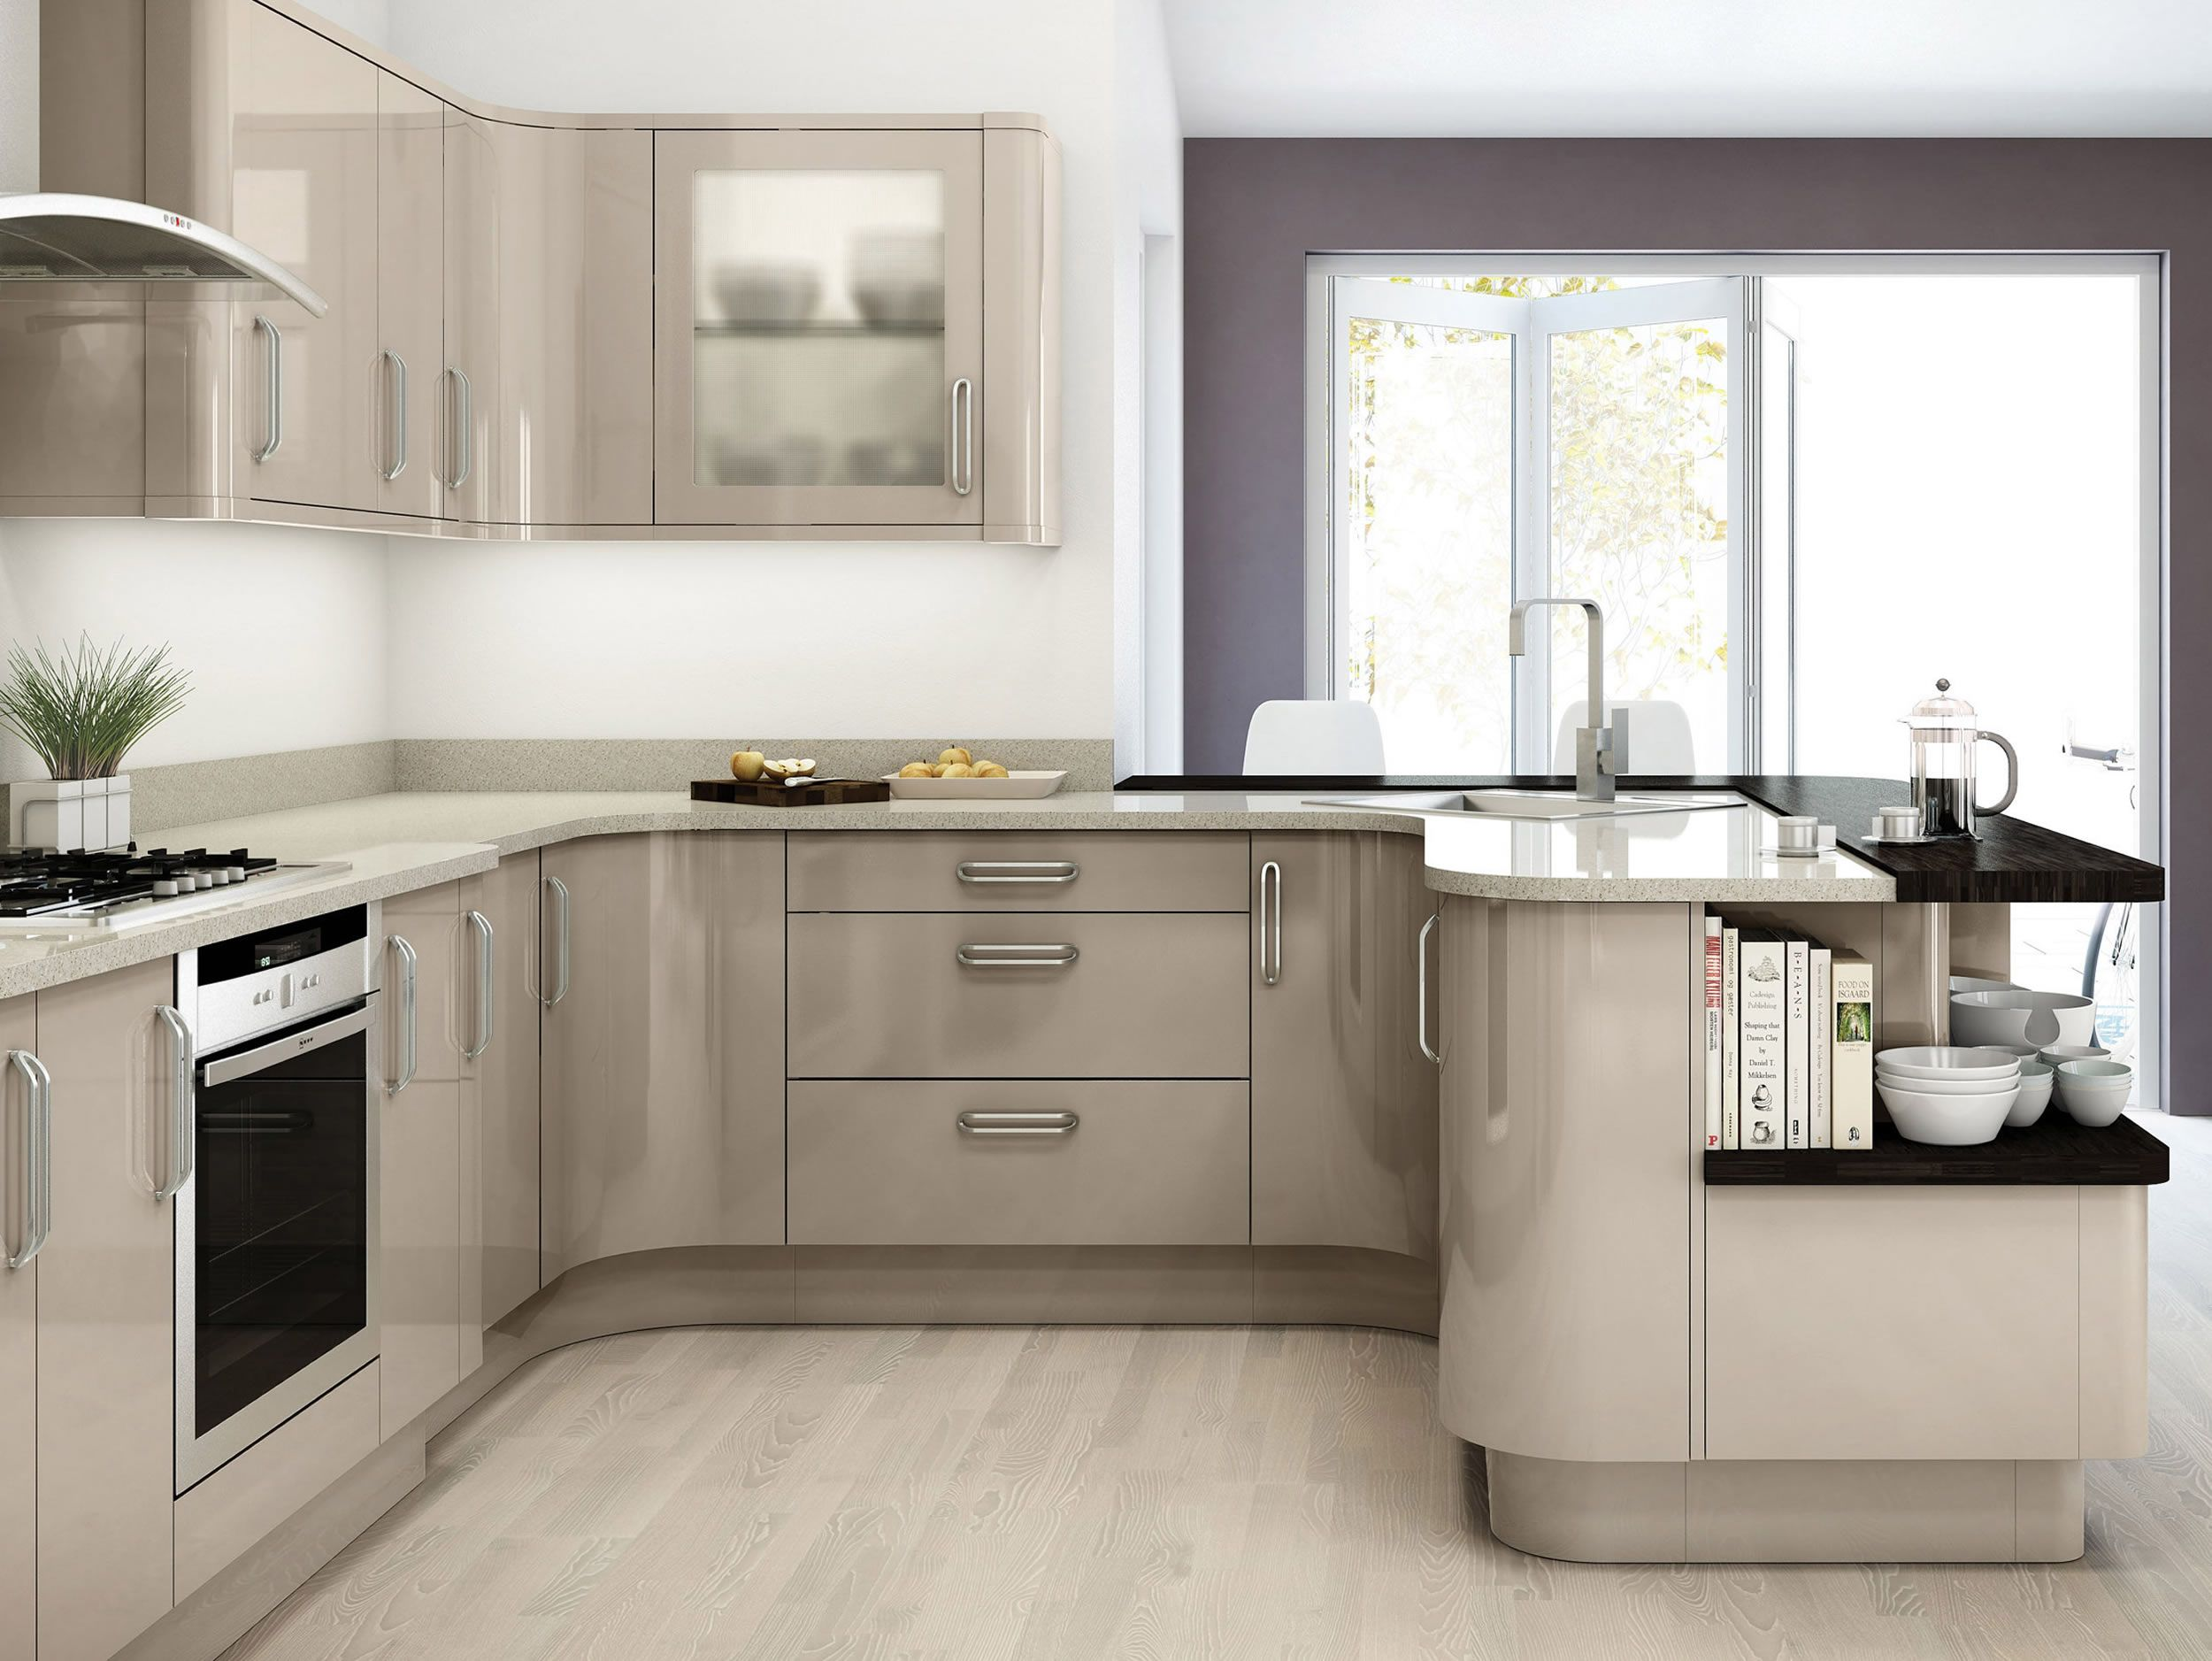 Modern Kitchen Units http://www.sncollection.co.uk/assets/images/kitchens